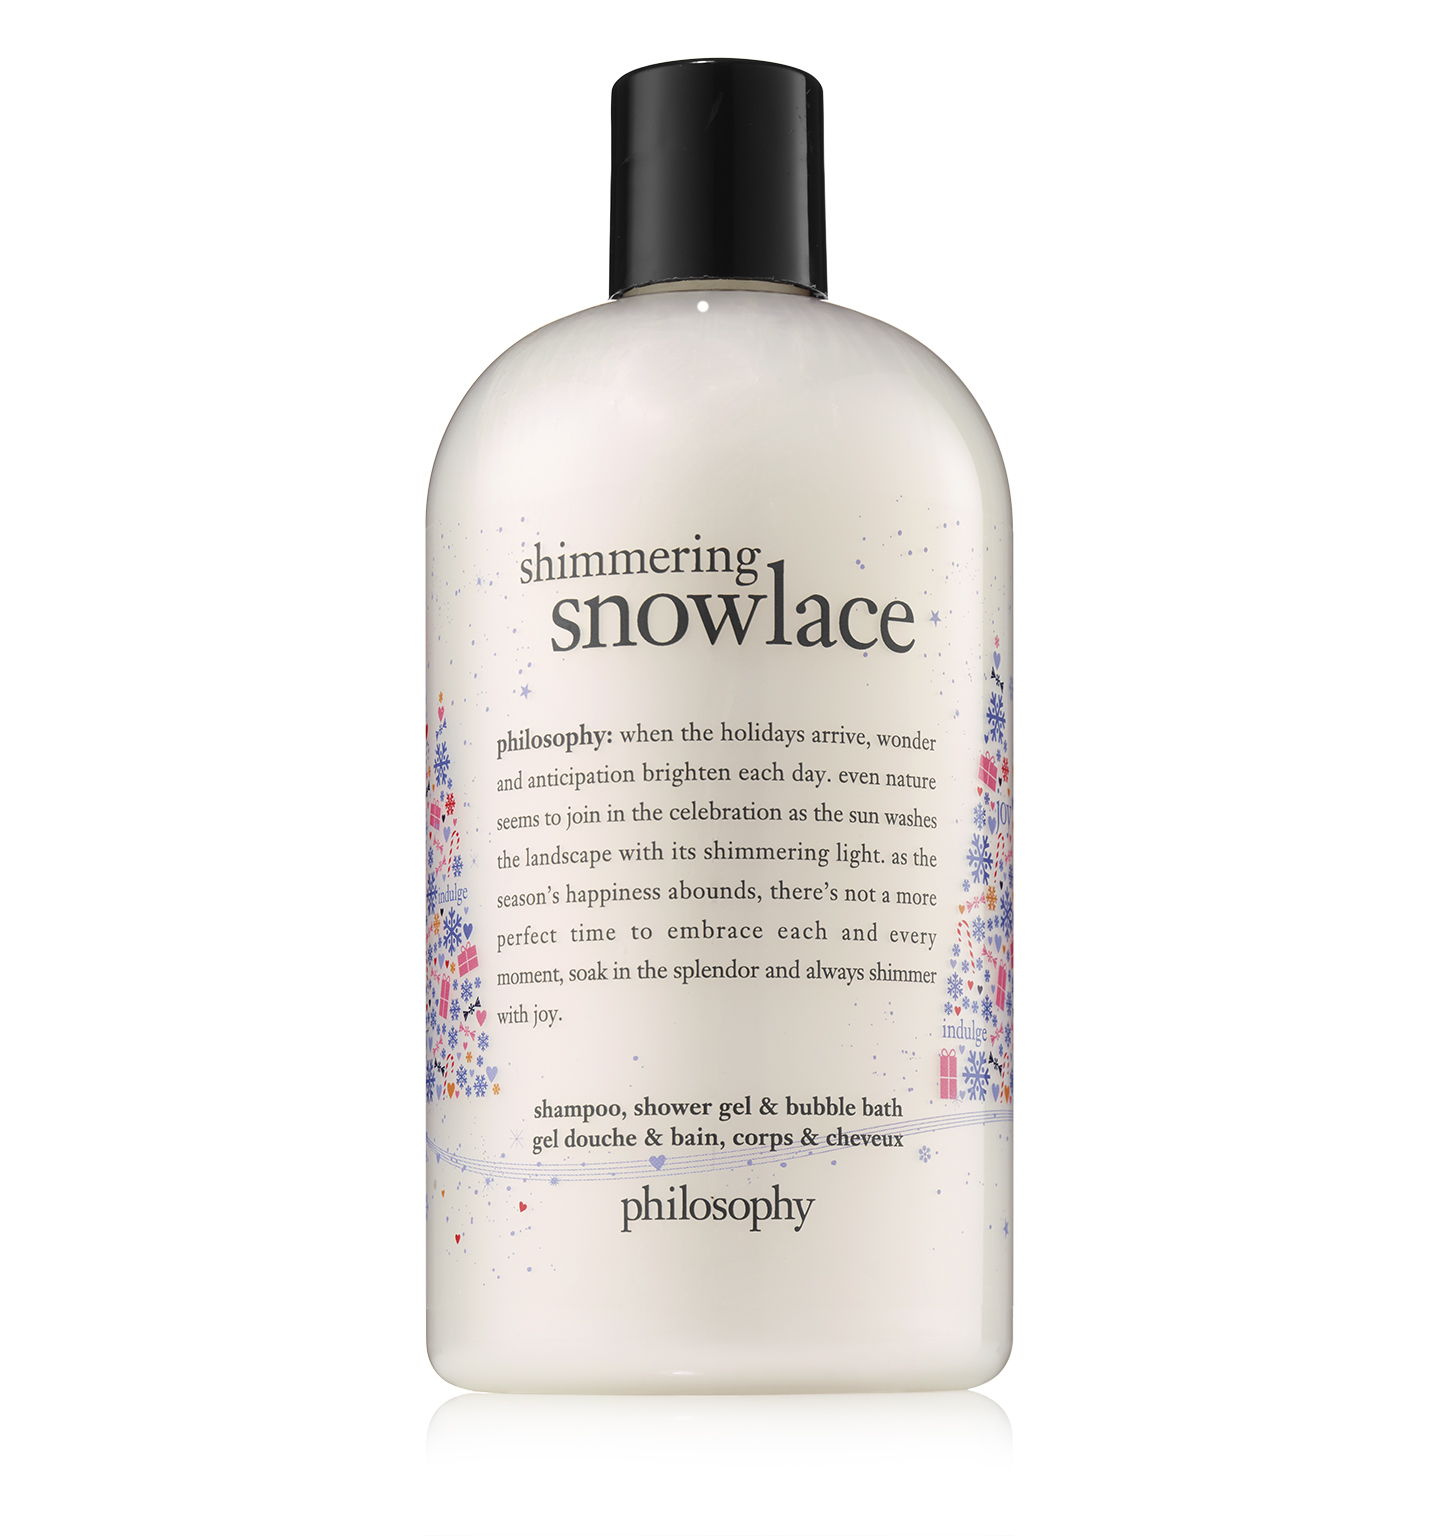 philosophy, shimmering snowlace